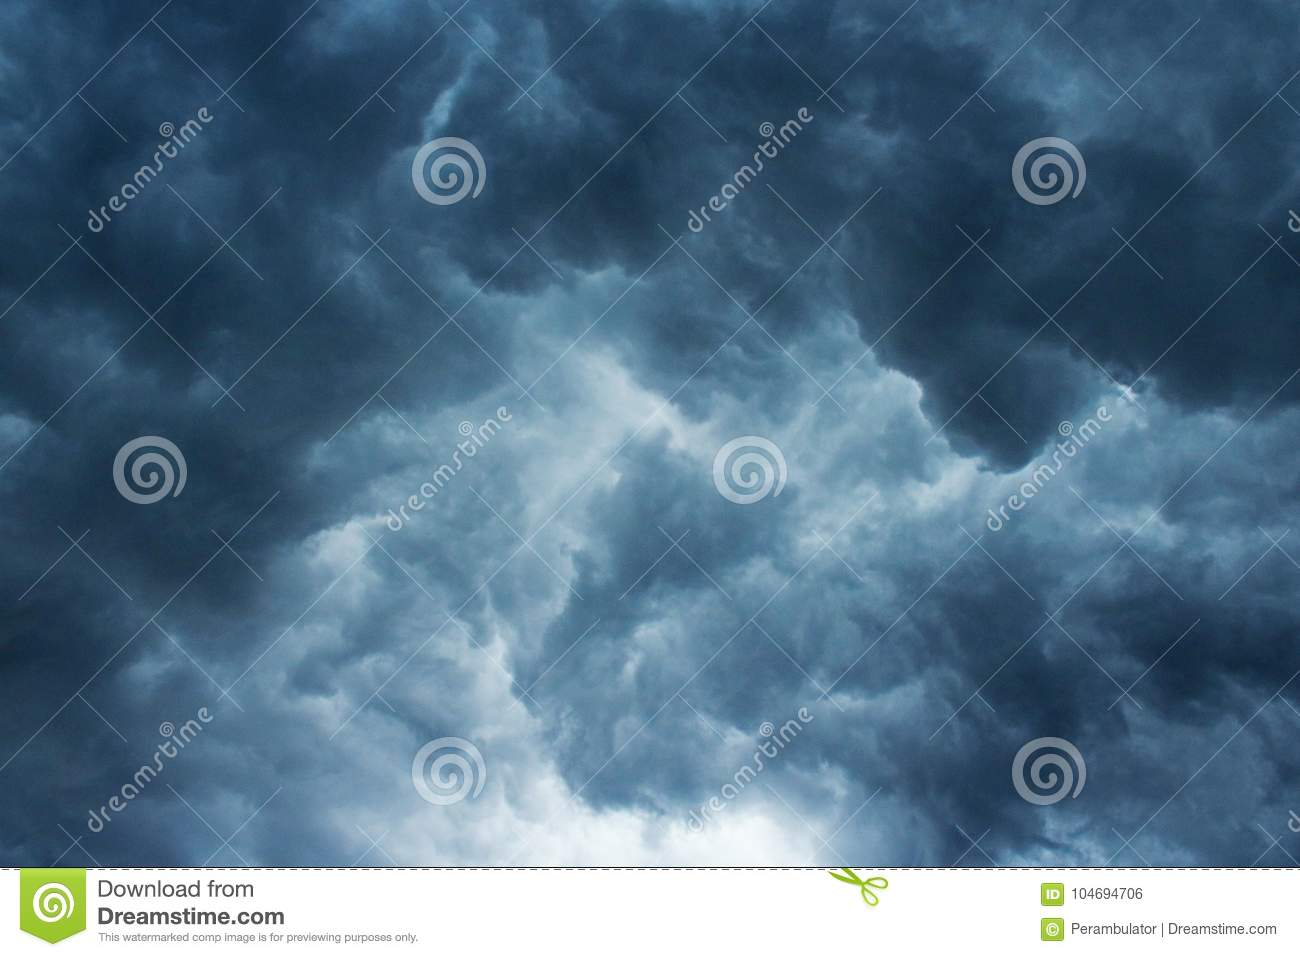 CHAOTIC STORM CLOUDS